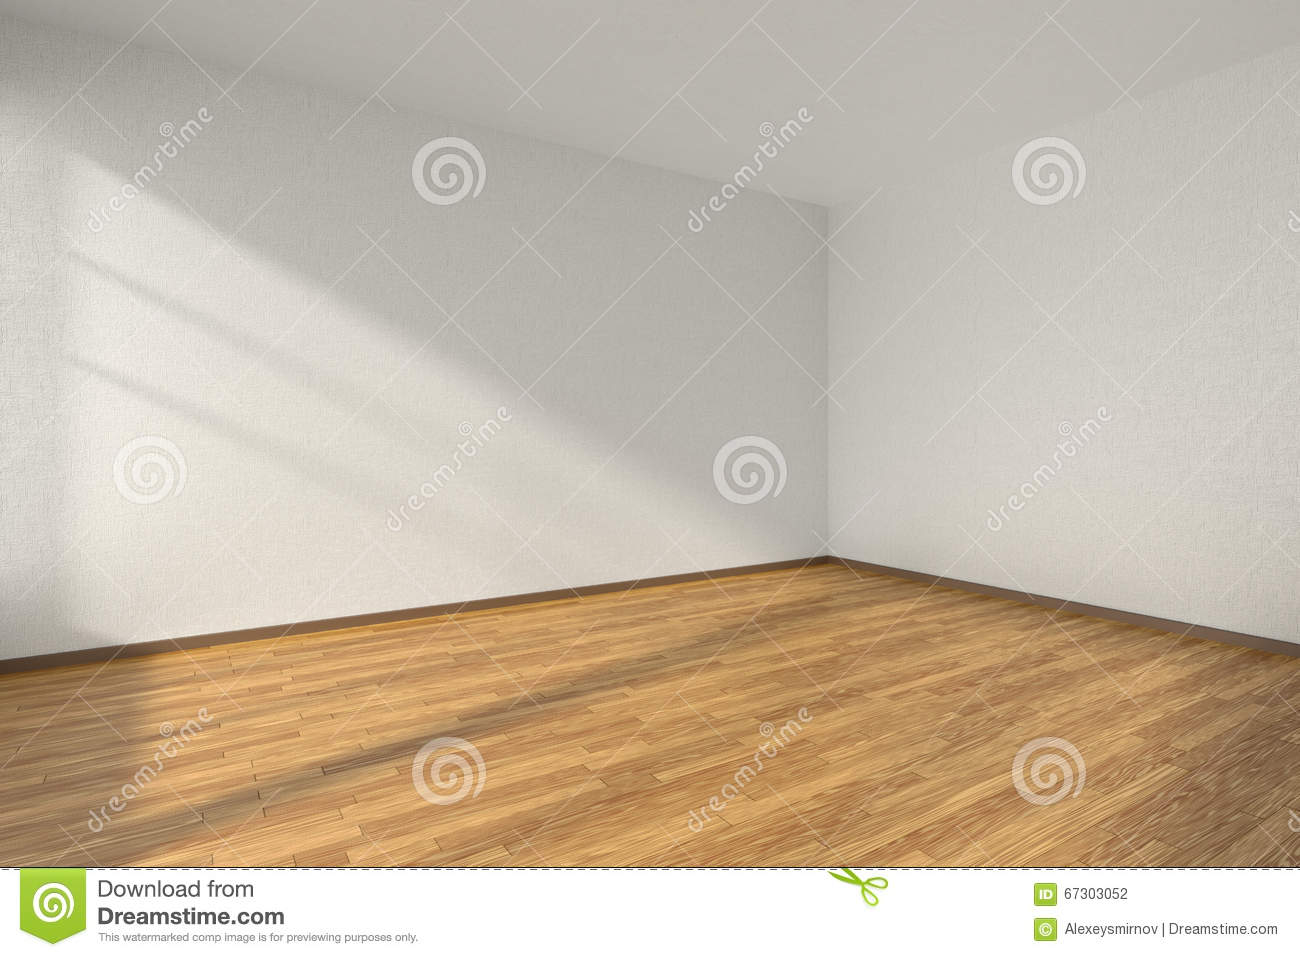 Empty Room With Parquet Floor And Textured White Walls